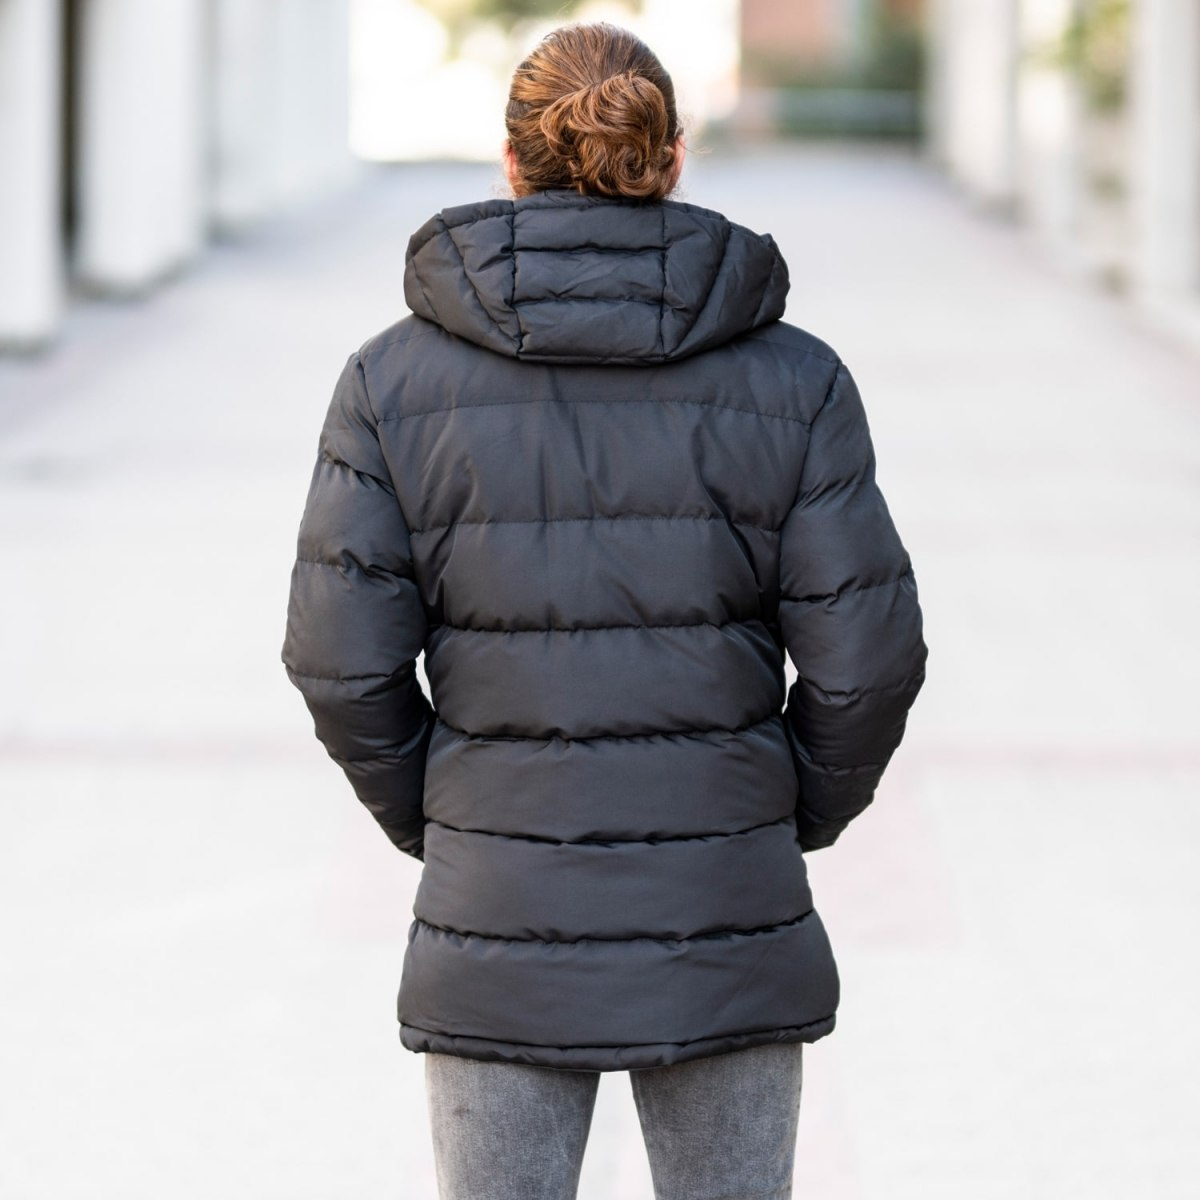 Windproof Puff Jacket In Black MV Jacket Collection - 4